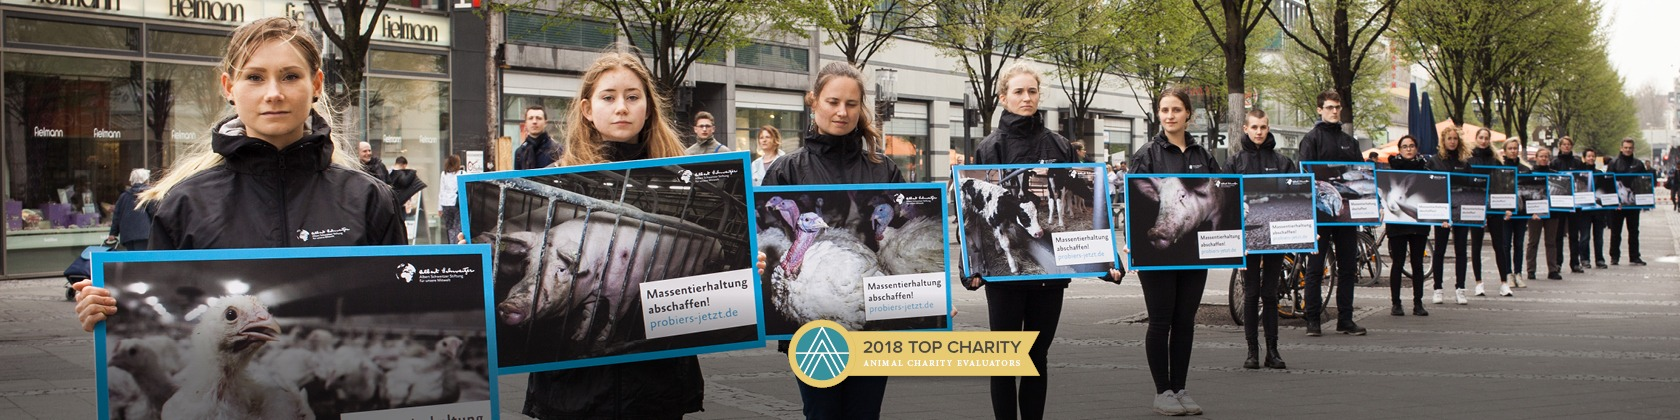 Sixteen animal activist line up holding photos of animals being slaughtered. Includes Animal Charity Evaluators 2018 Top Charity badge.